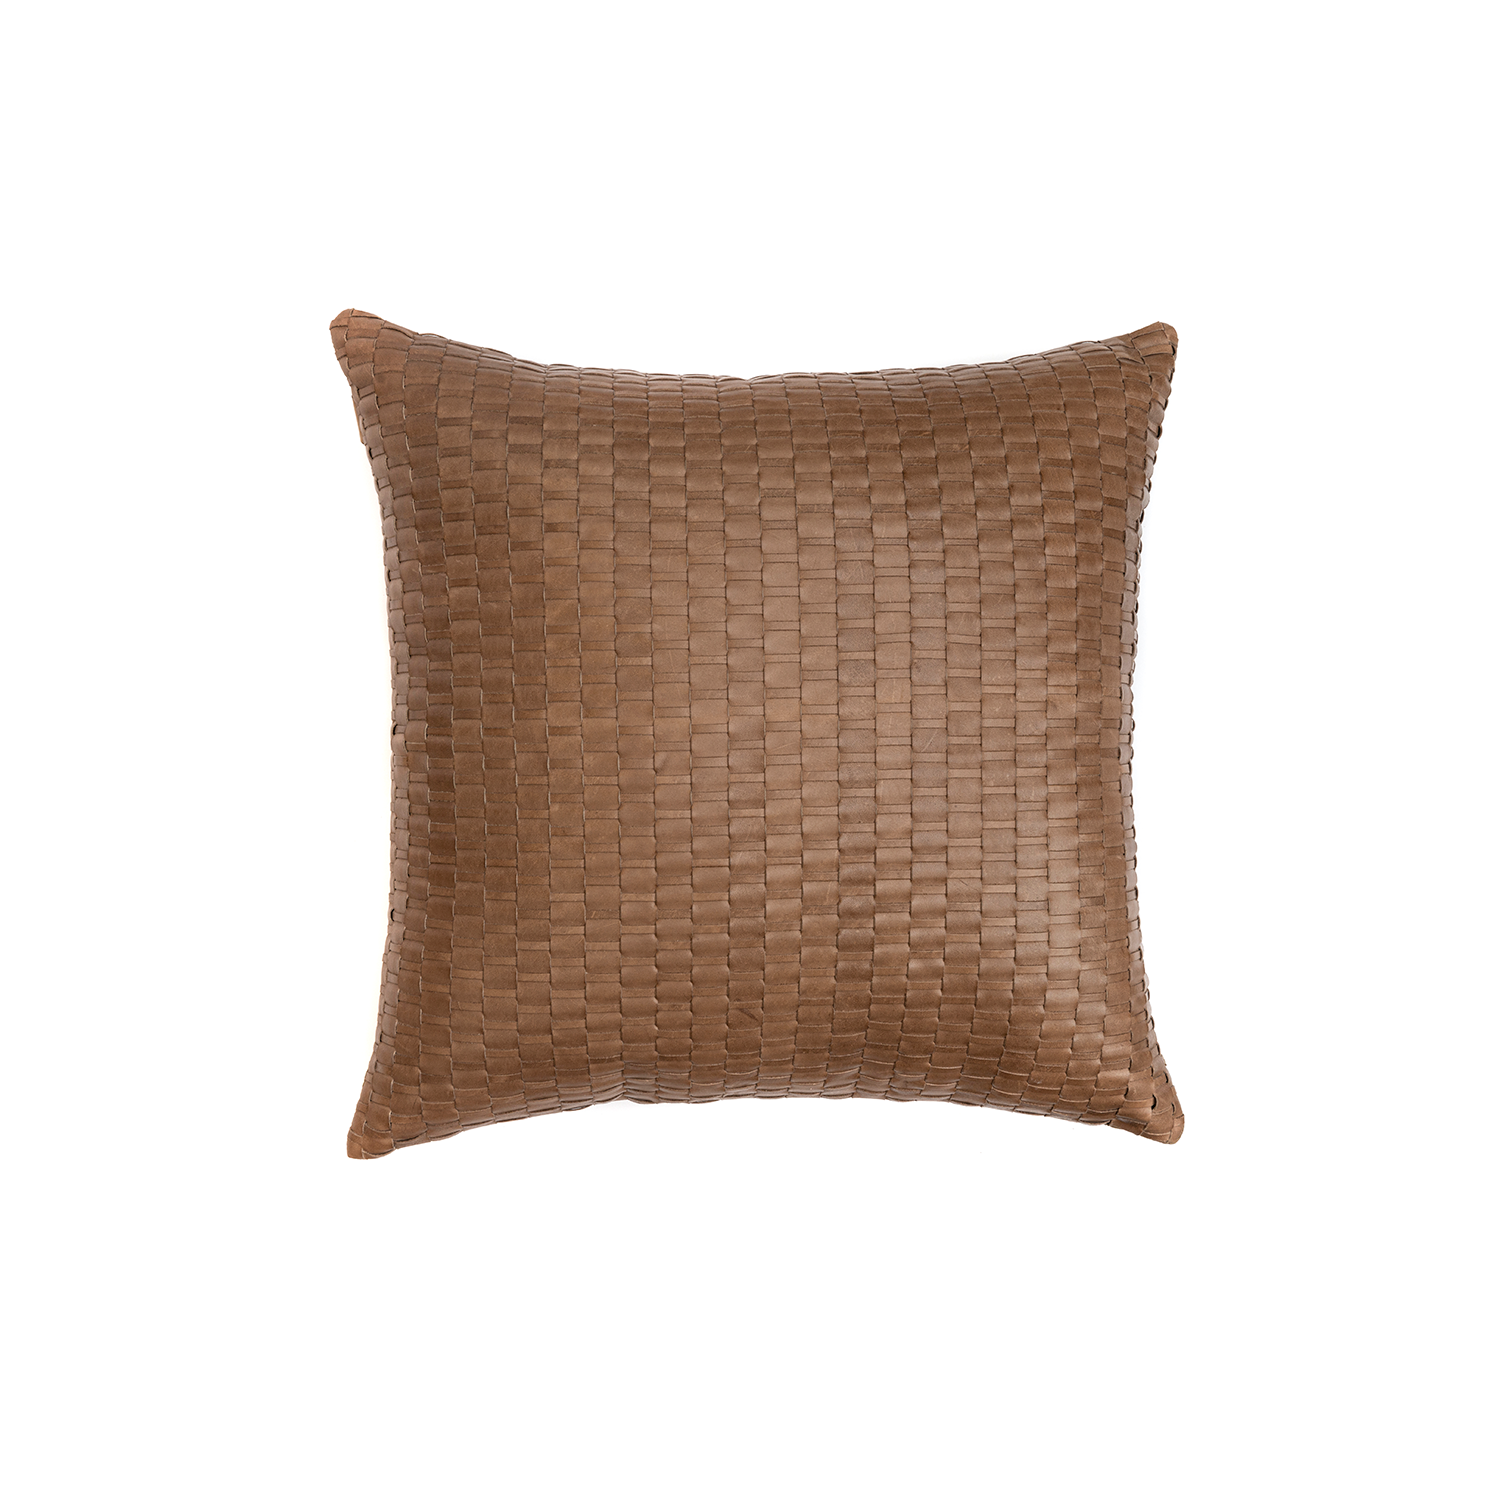 Maia Woven Leather Cushion Square - The Maia Woven Leather Cushion is designed to complement an ambient with a natural and sophisticated feeling. This cushion style is available in pleated leather or pleated suede leather. Elisa Atheniense woven handmade leather cushions are specially manufactured in Brazil using an exclusive treated leather that brings the soft feel touch to every single piece.   The front panel is handwoven in leather and the back panel is 100% Pes, made in Brazil.  The inner cushion is available in Hollow Fibre and European Duck Feathers, made in the UK.  Please enquire for more information and see colour chart for reference.   | Matter of Stuff